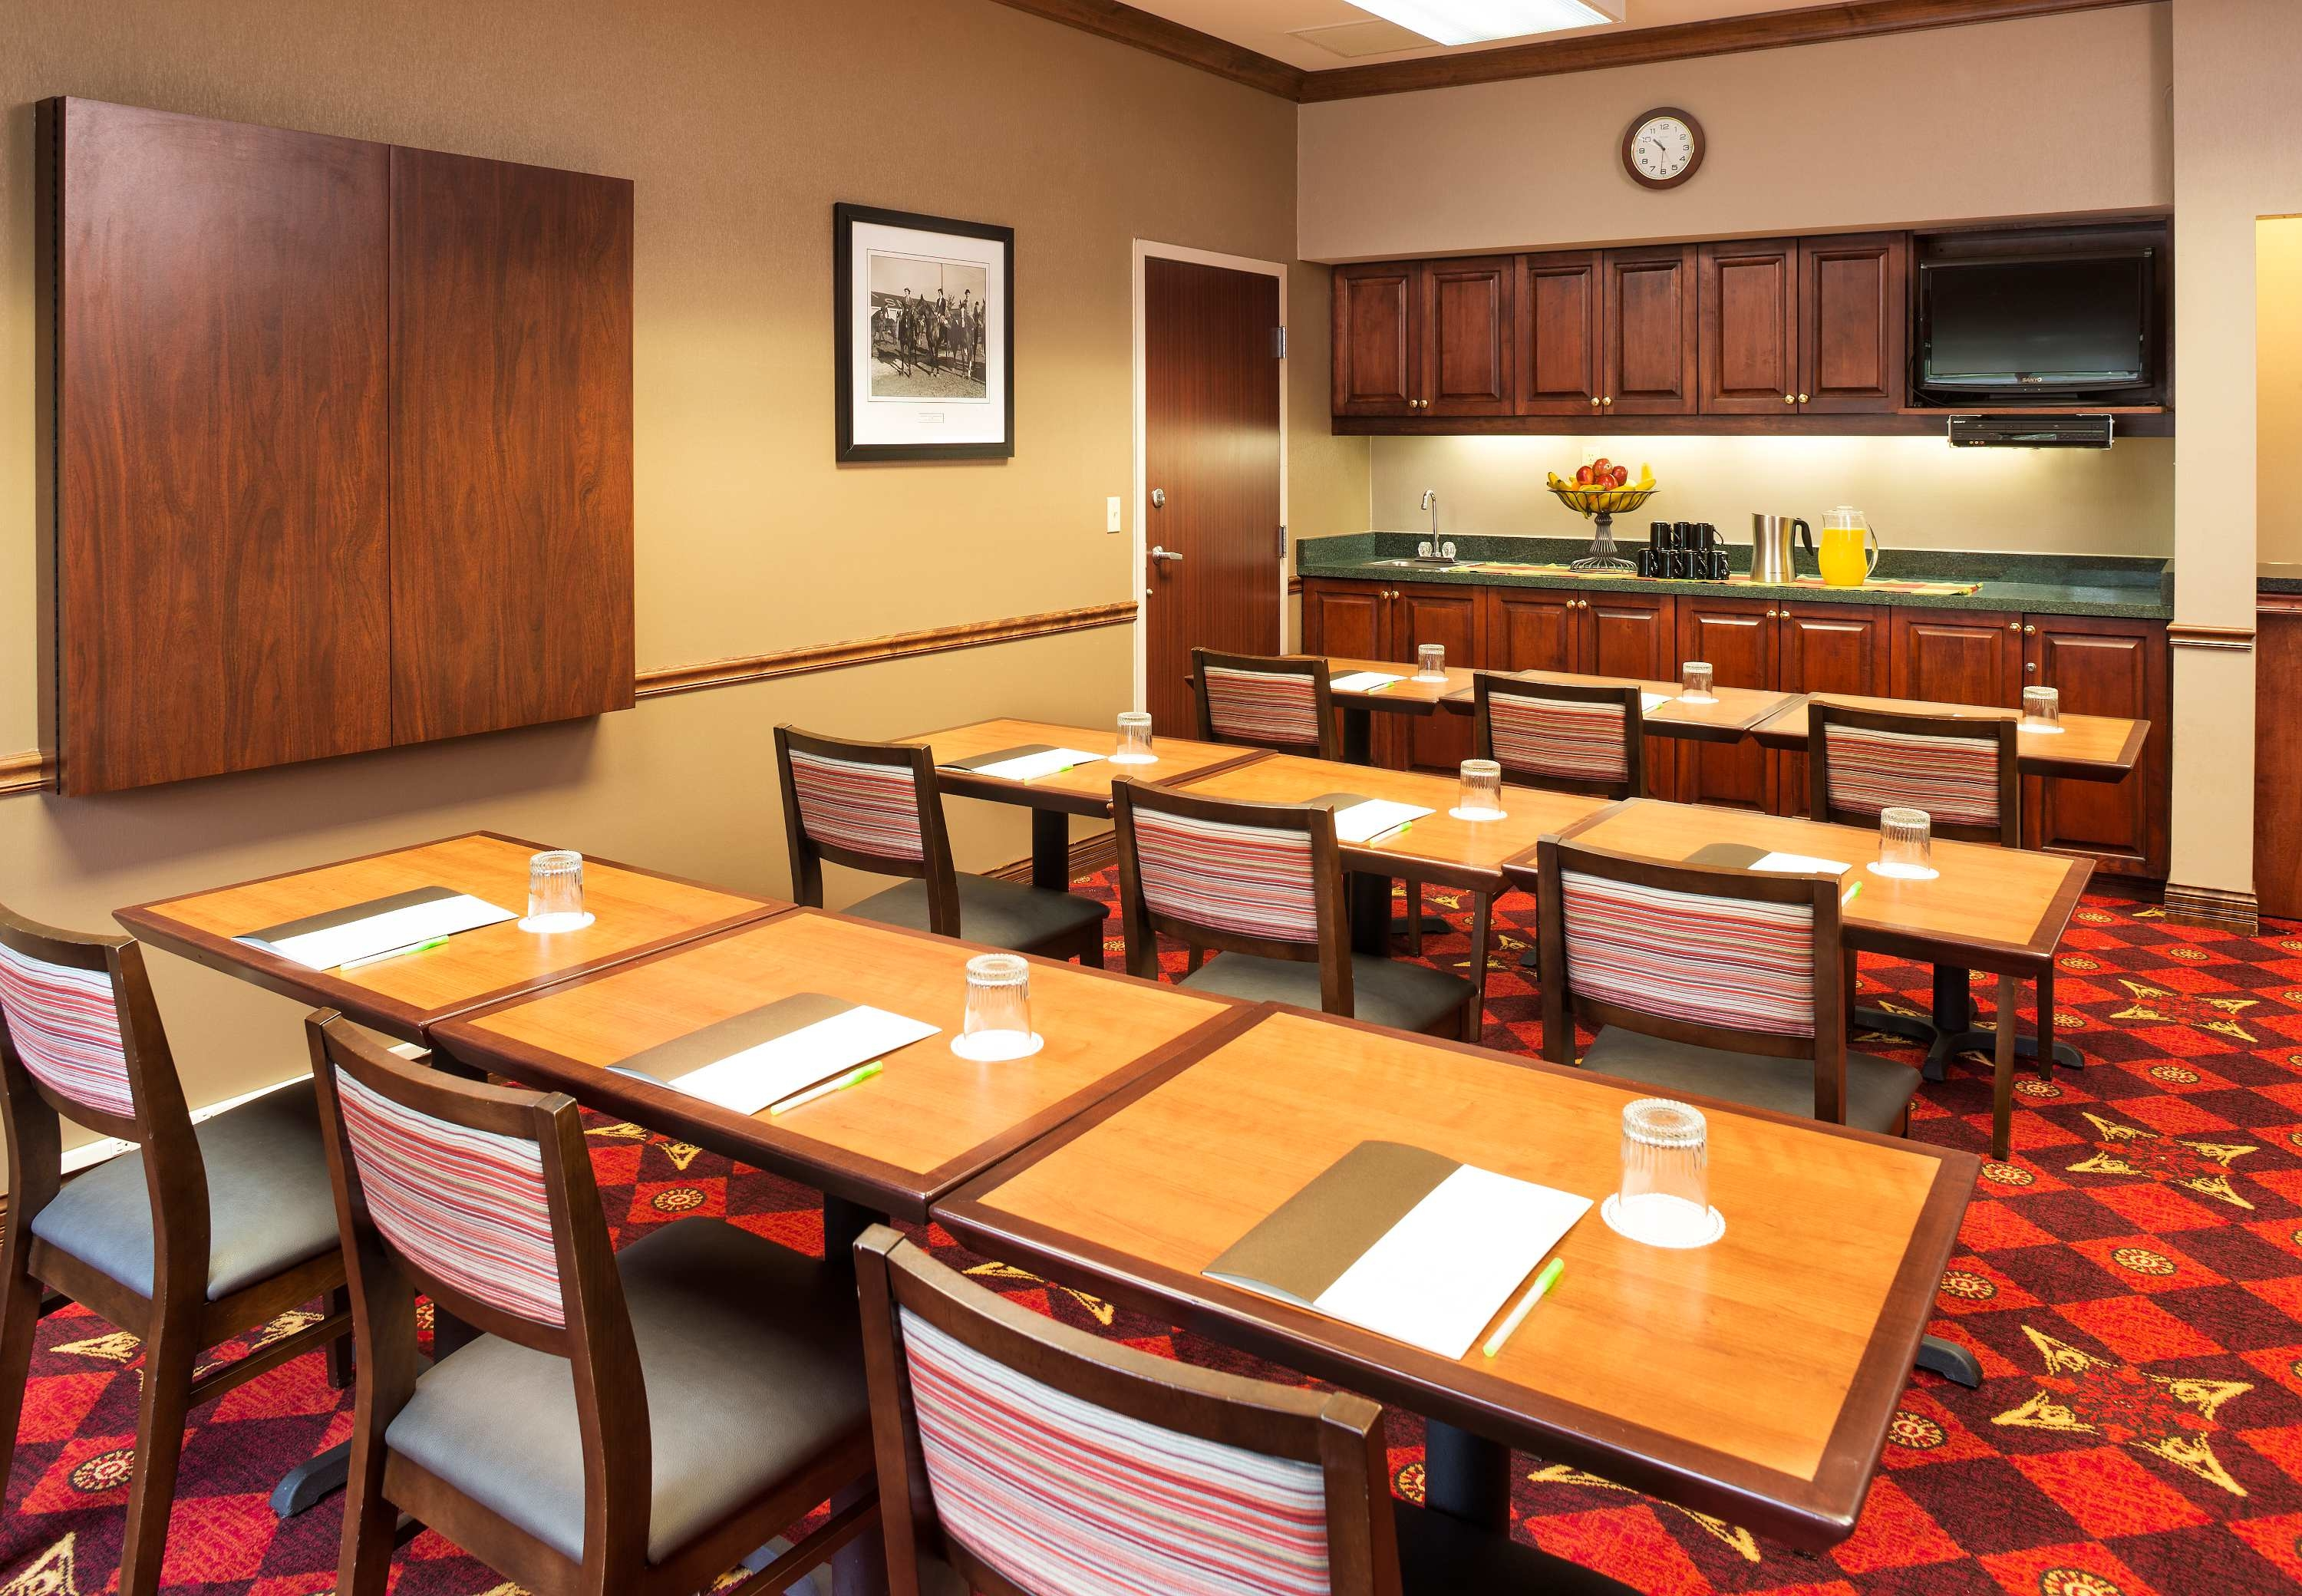 SpringHill Suites by Marriott Minneapolis-St. Paul Airport/Eagan image 6